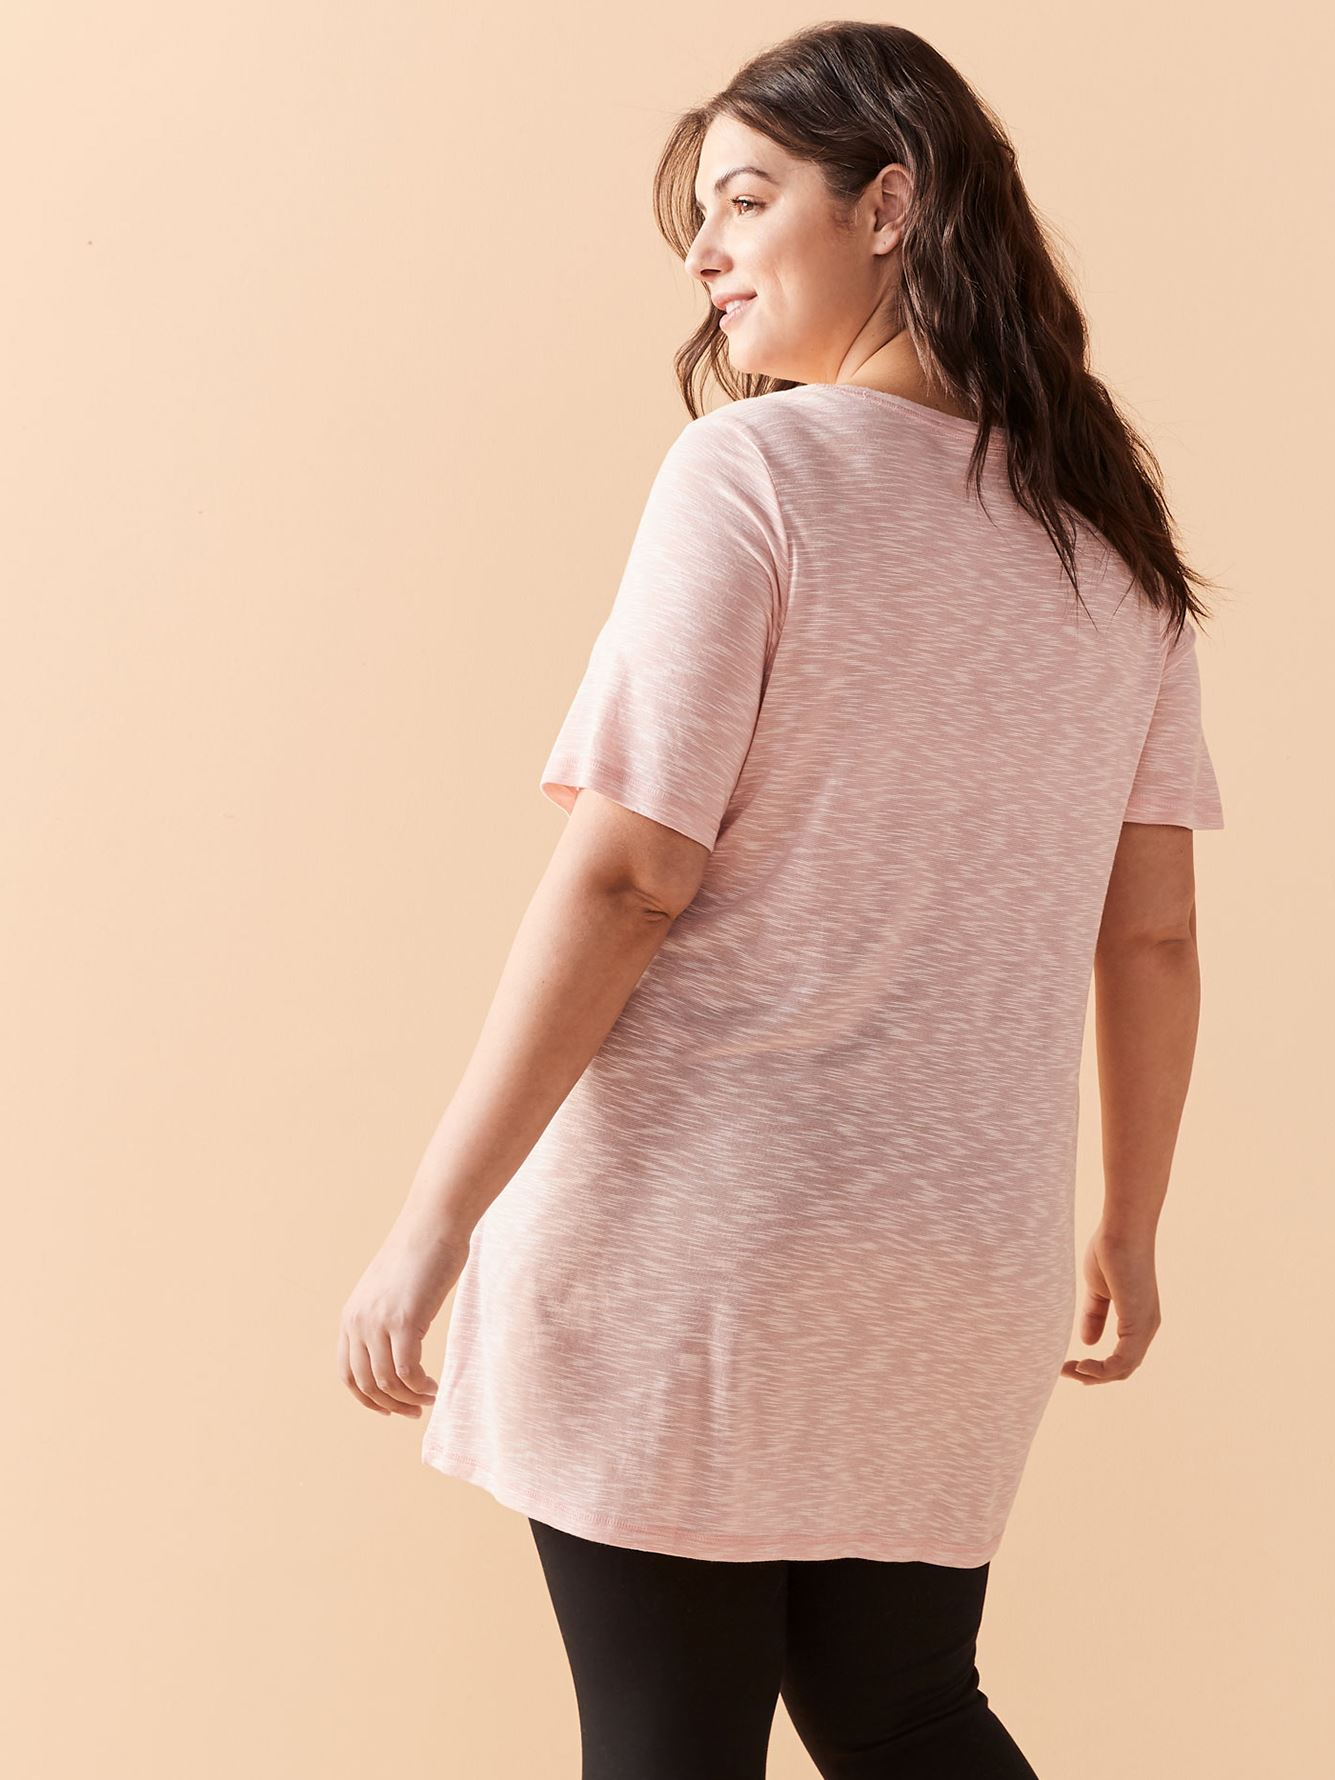 Short Sleeve Tunic T-Shirt - ActiveZone